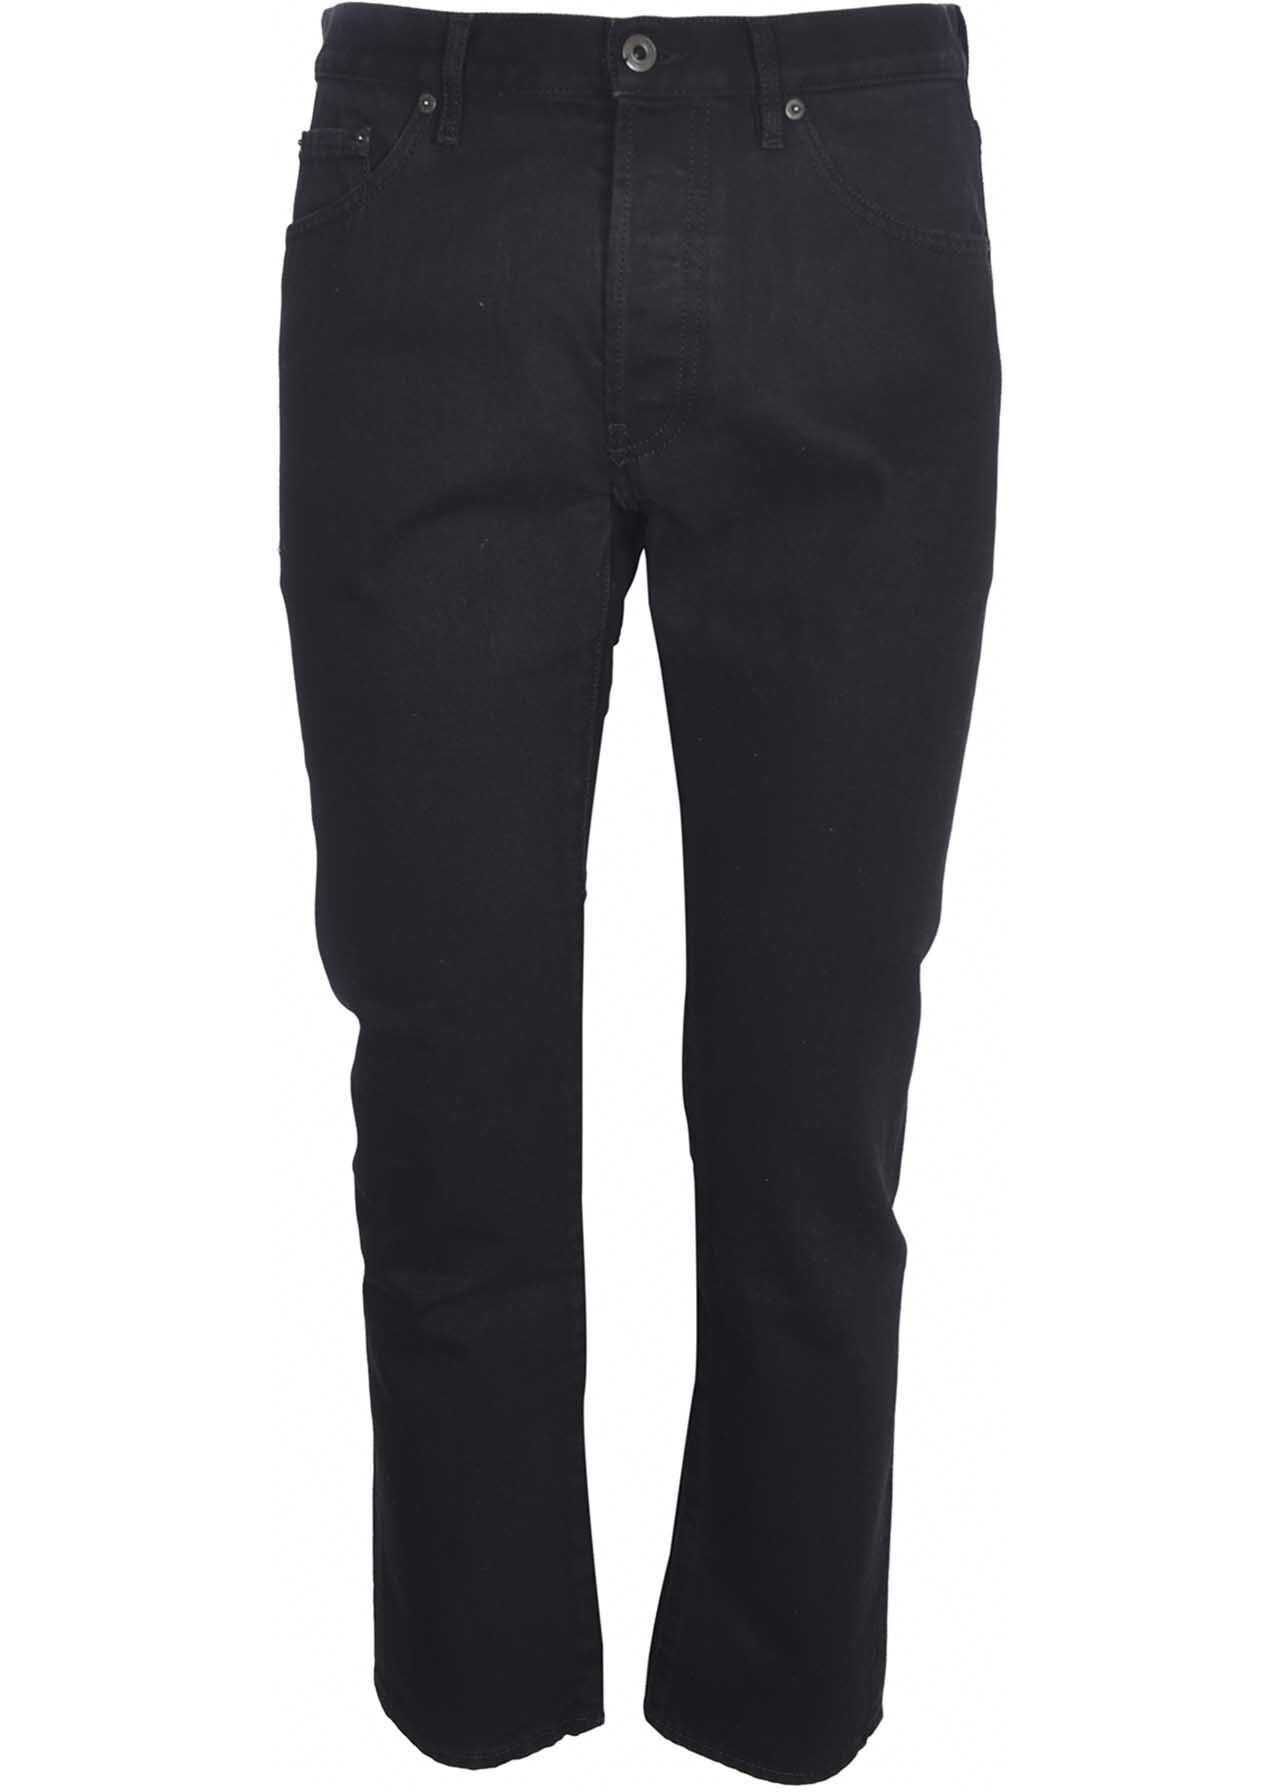 Valentino Garavani 5 Pockets Jeans In Black Black imagine